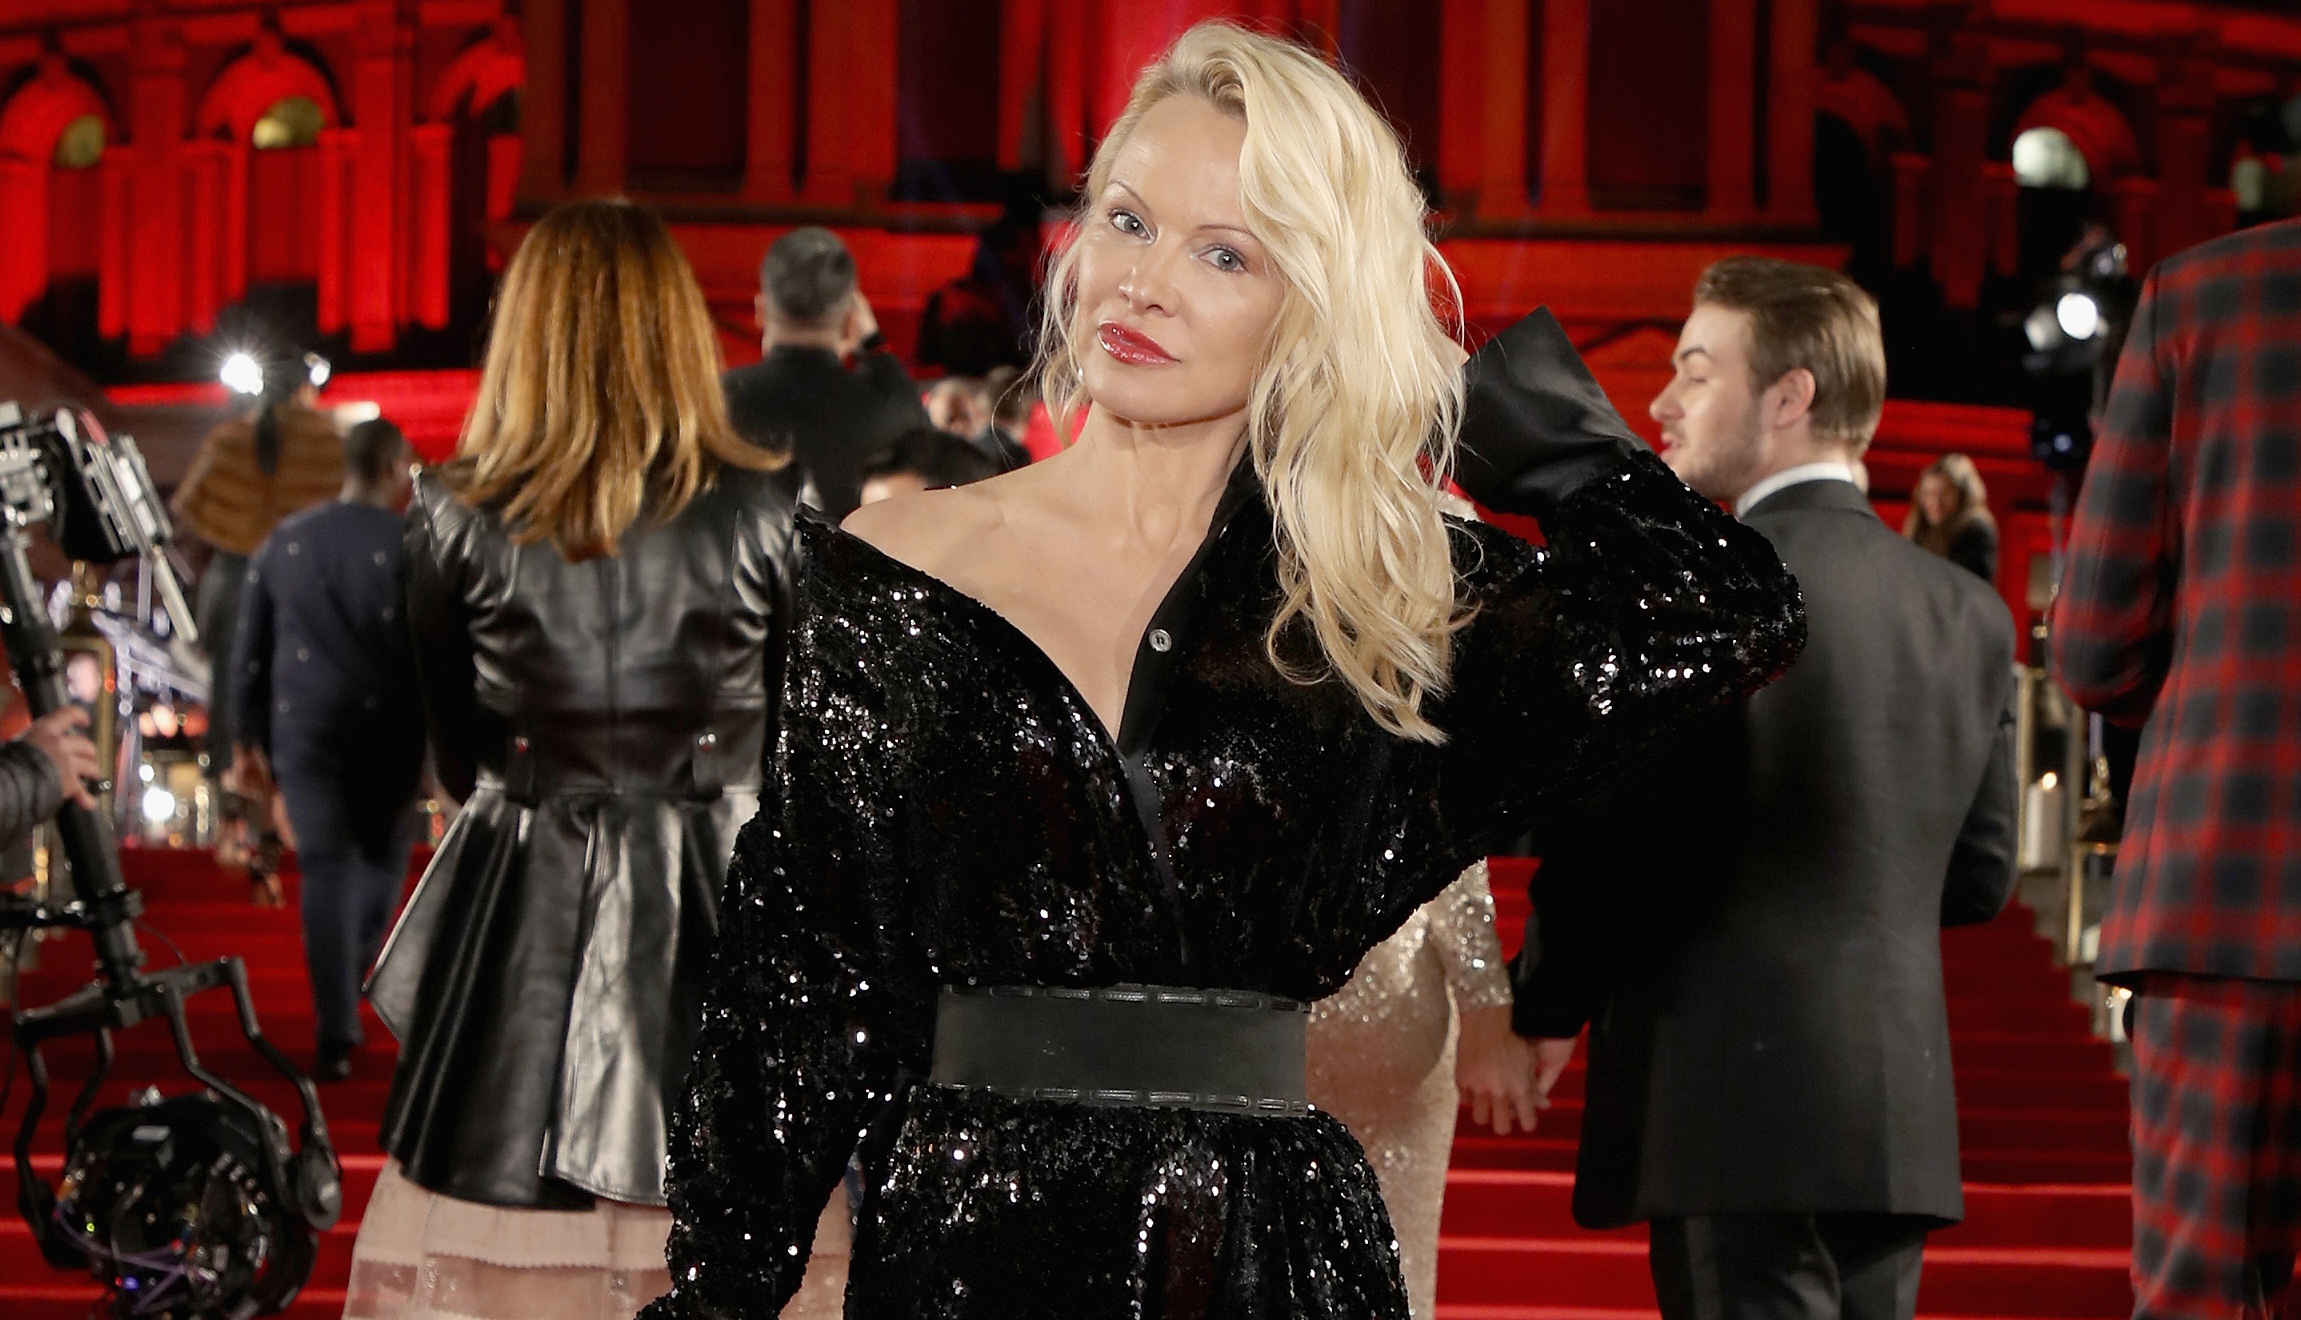 Pamela Anderson calls out Trump in rant about social media bullies: 'A horrible example of self restraint'